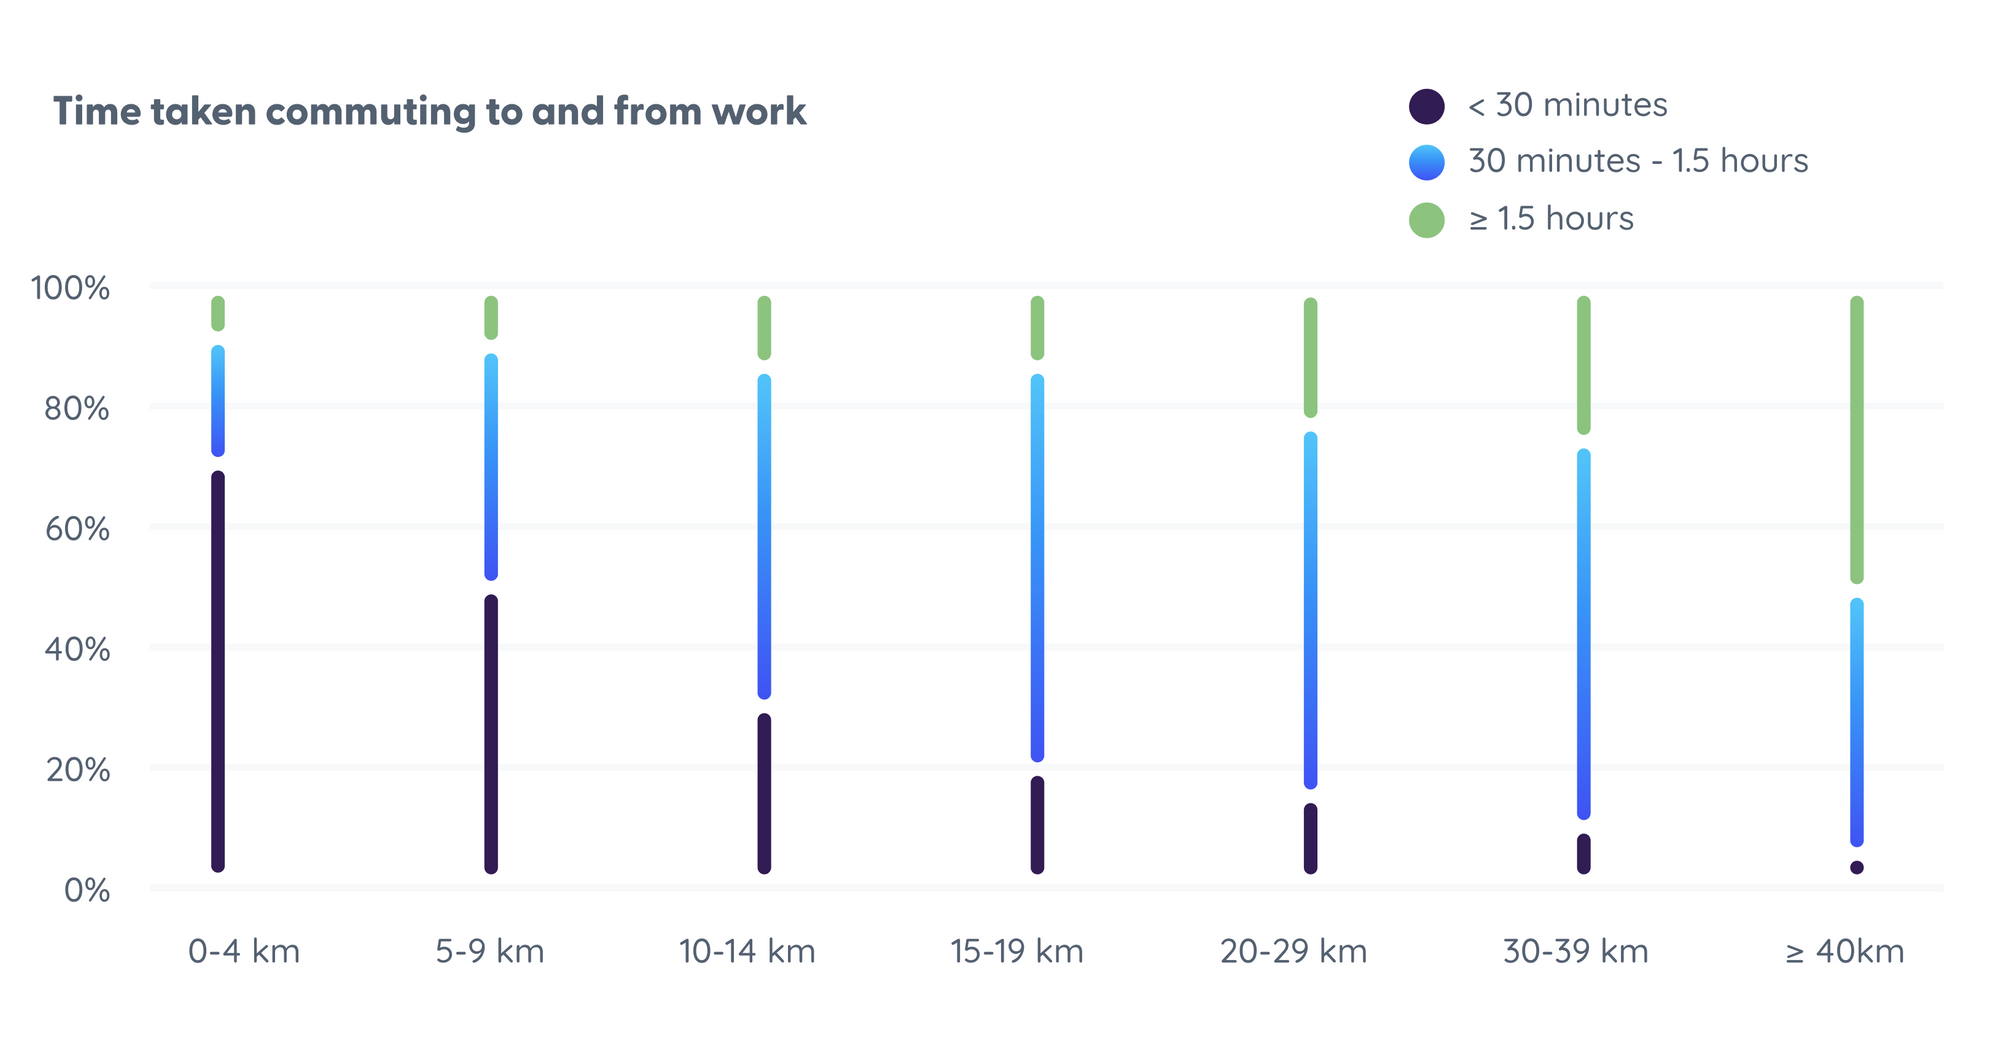 Graph: The time it takes for people to commute to and from work over different distances.